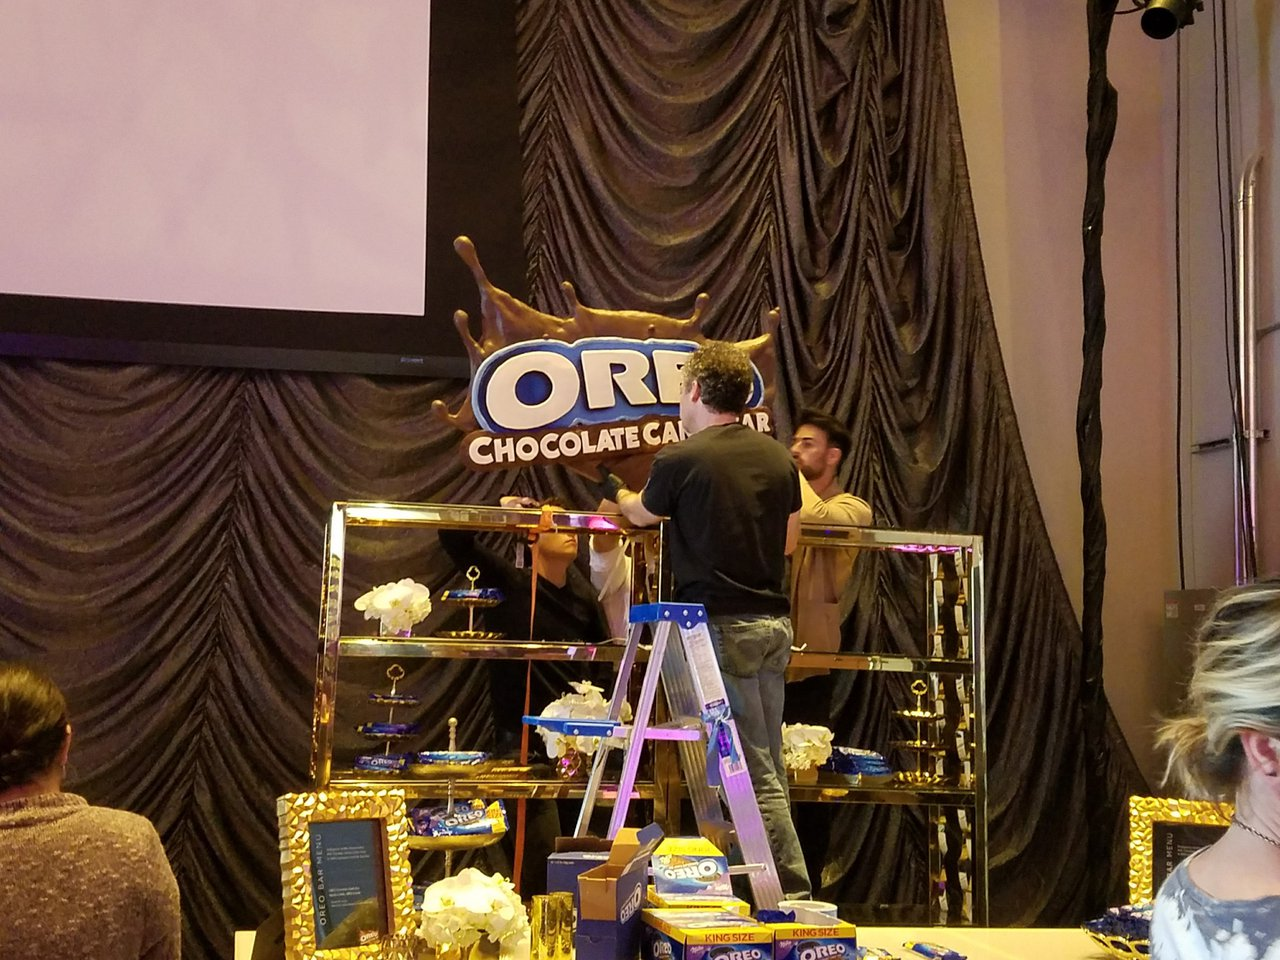 Oreo Oscars Viewing Party photo 20170226_114656.jpg